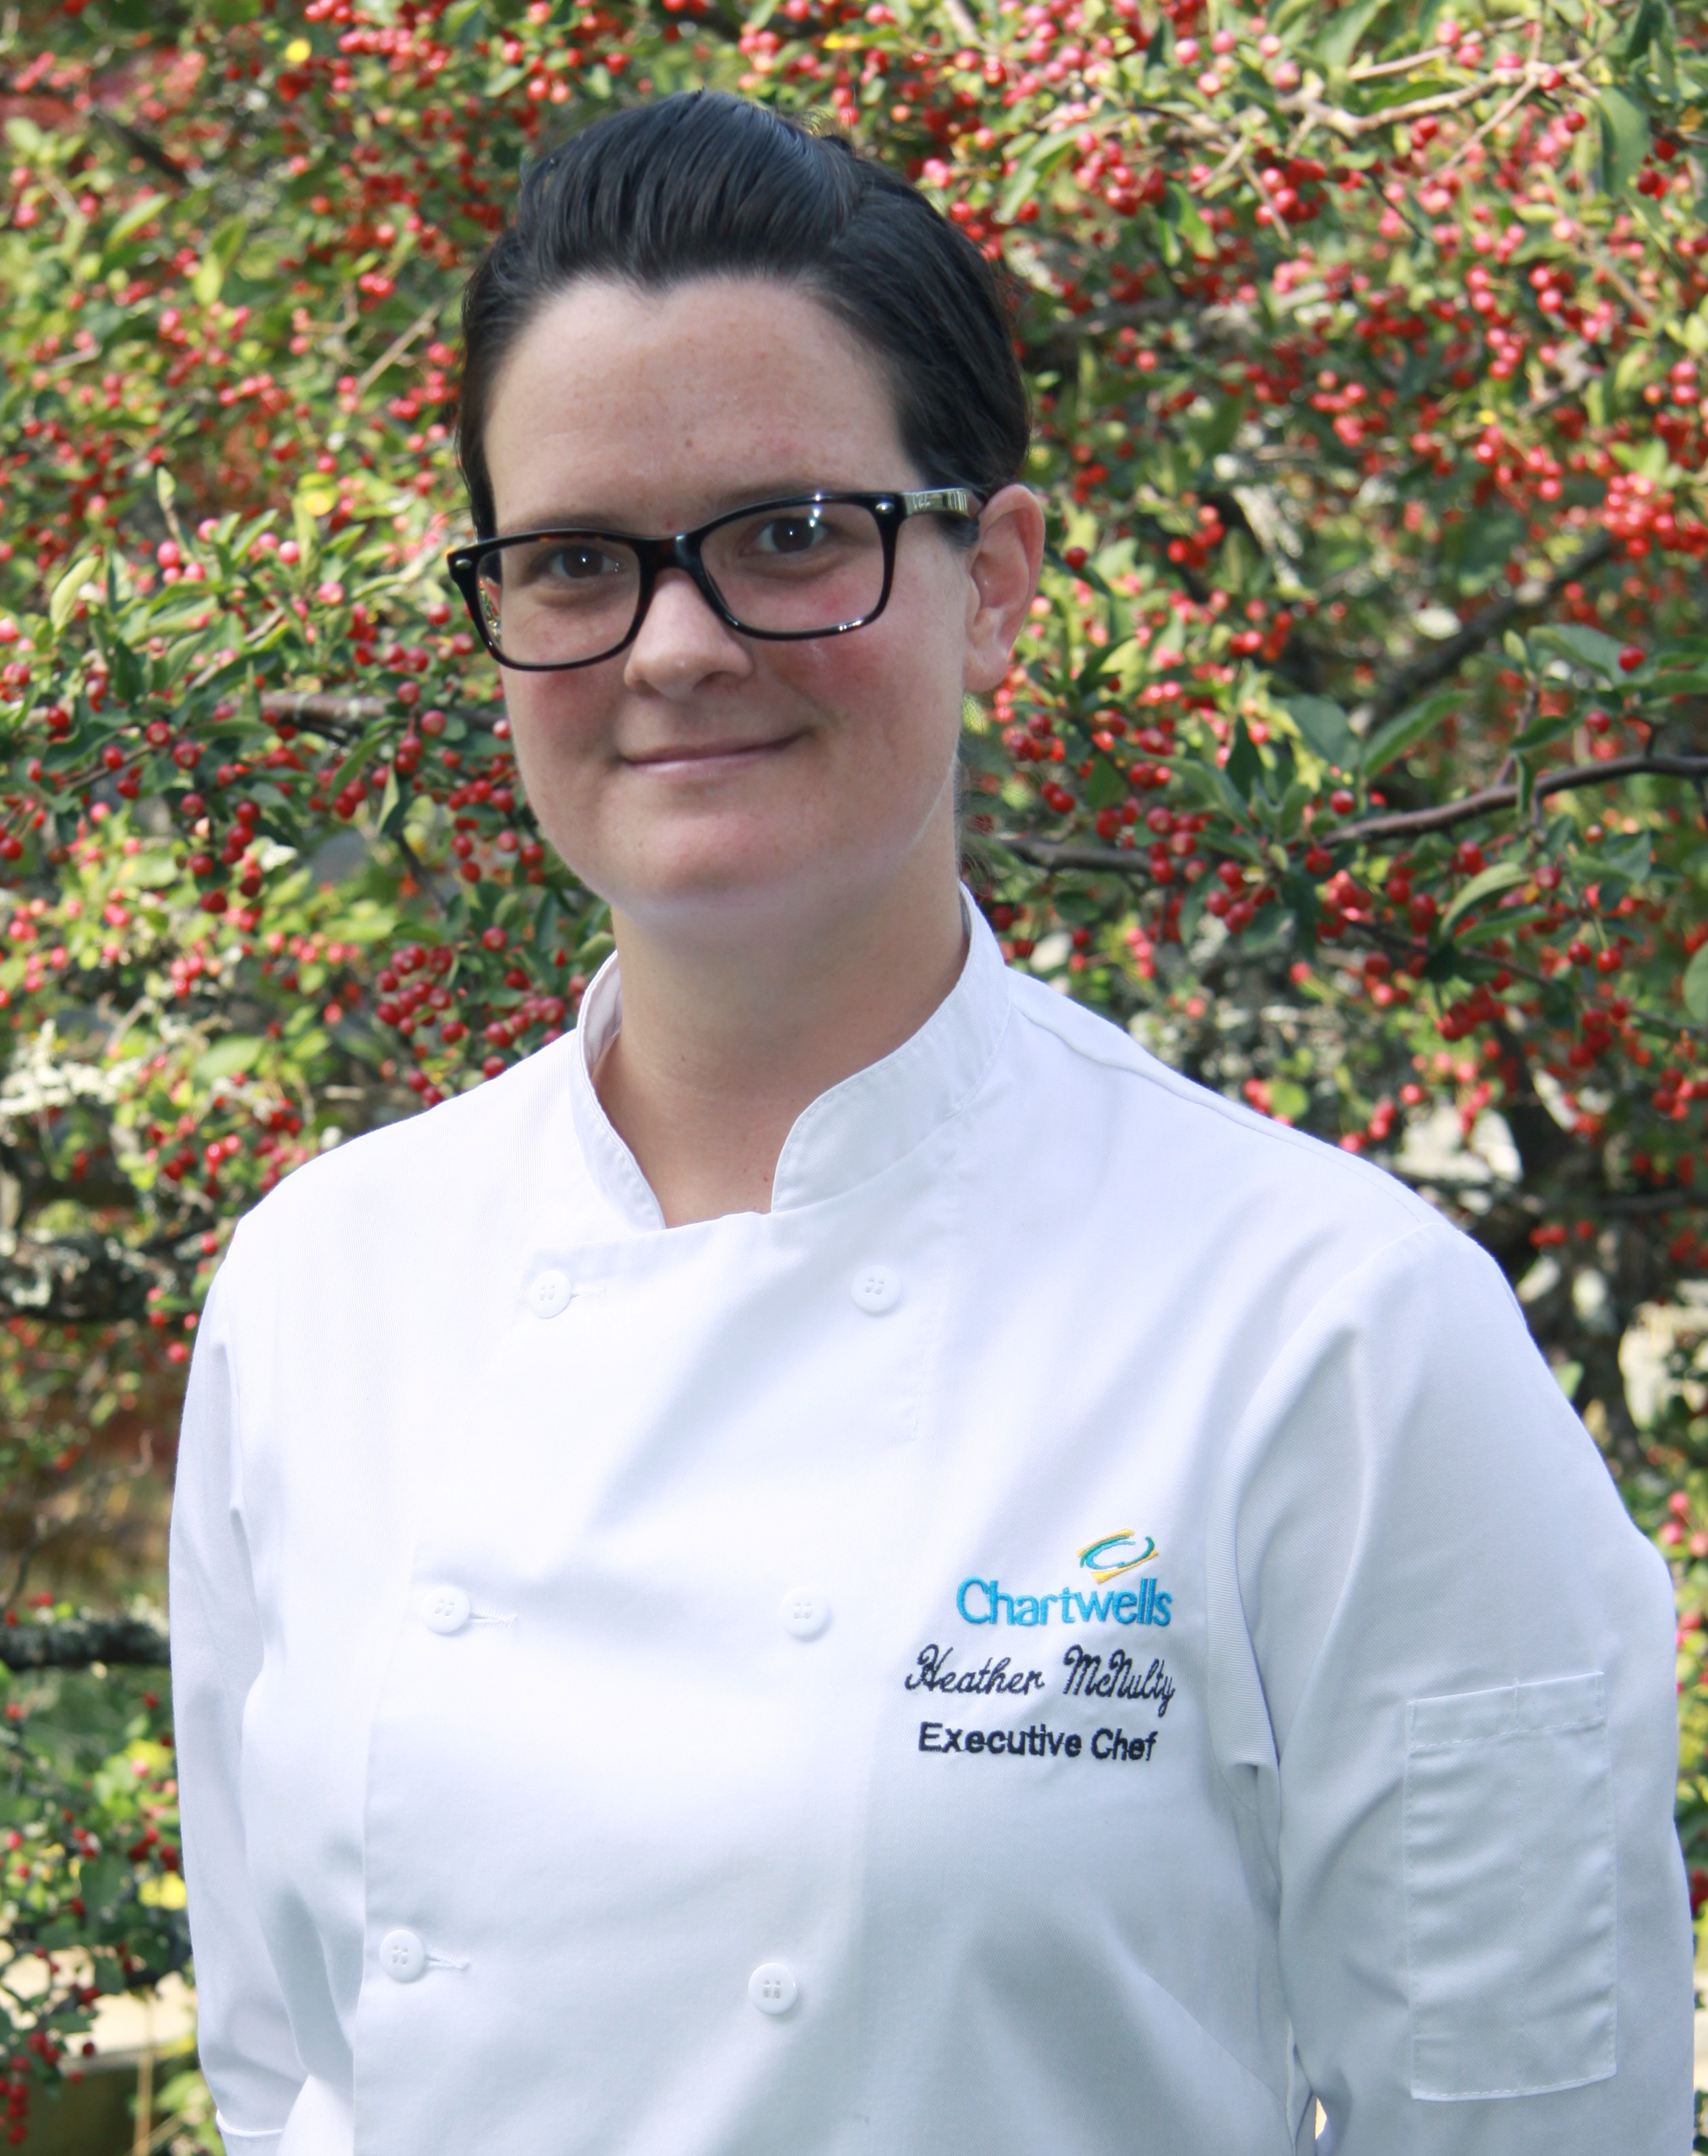 Executive Chef Heather McNulty - Executive Chef